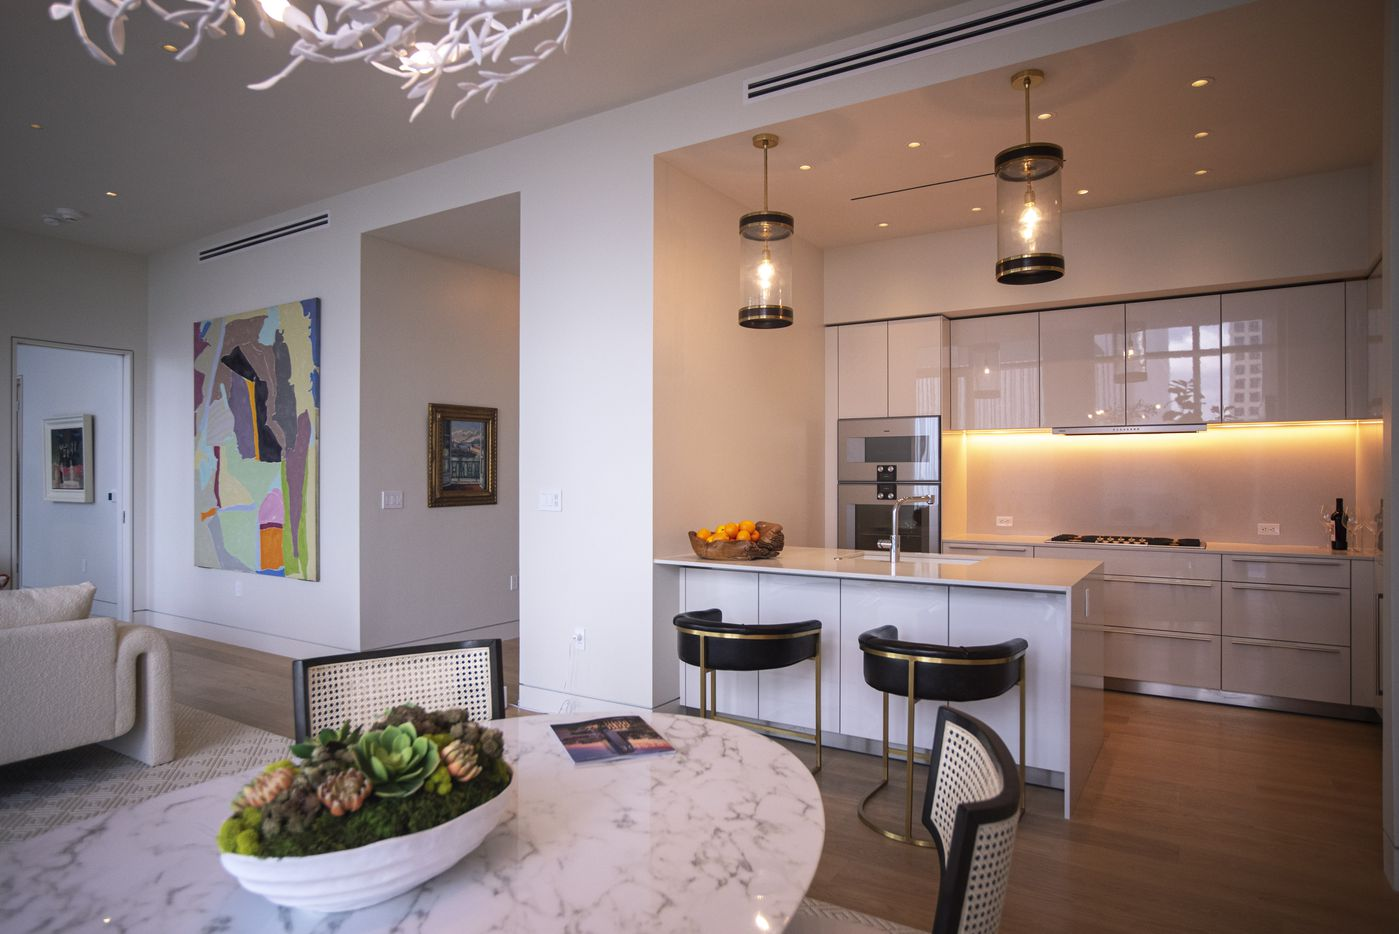 Dinning and kitchen space inside a condo at the Hall Arts Residences.